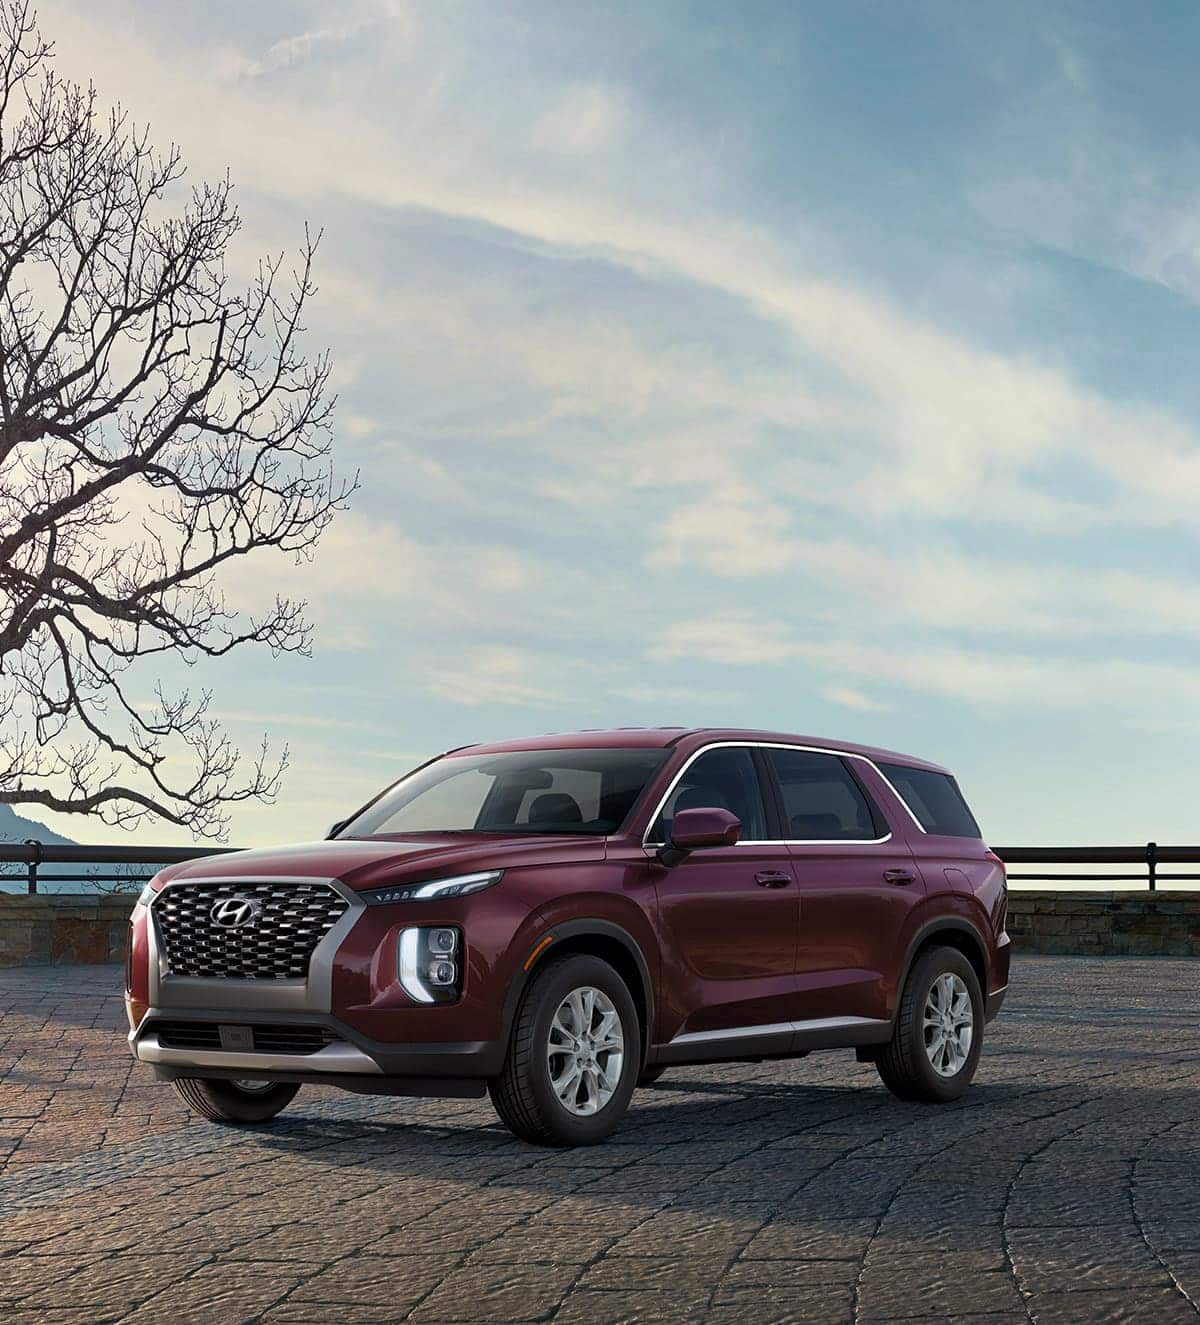 70 Great When Will The 2020 Hyundai Palisade Be Available New Review by When Will The 2020 Hyundai Palisade Be Available